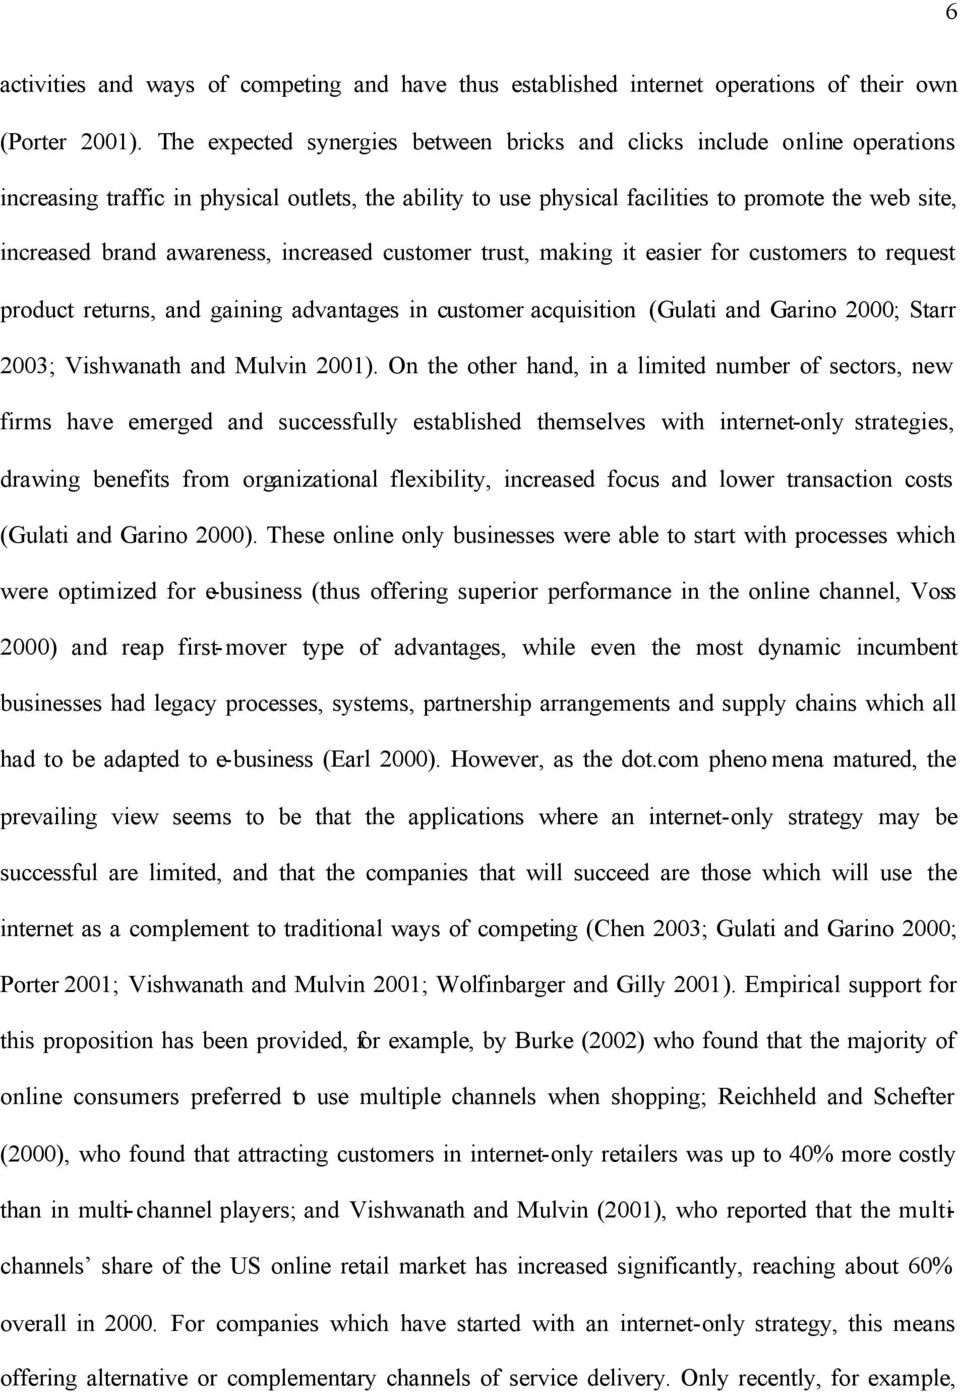 awareness, increased customer trust, making it easier for customers to request product returns, and gaining advantages in customer acquisition (Gulati and Garino 2000; Starr 2003; Vishwanath and